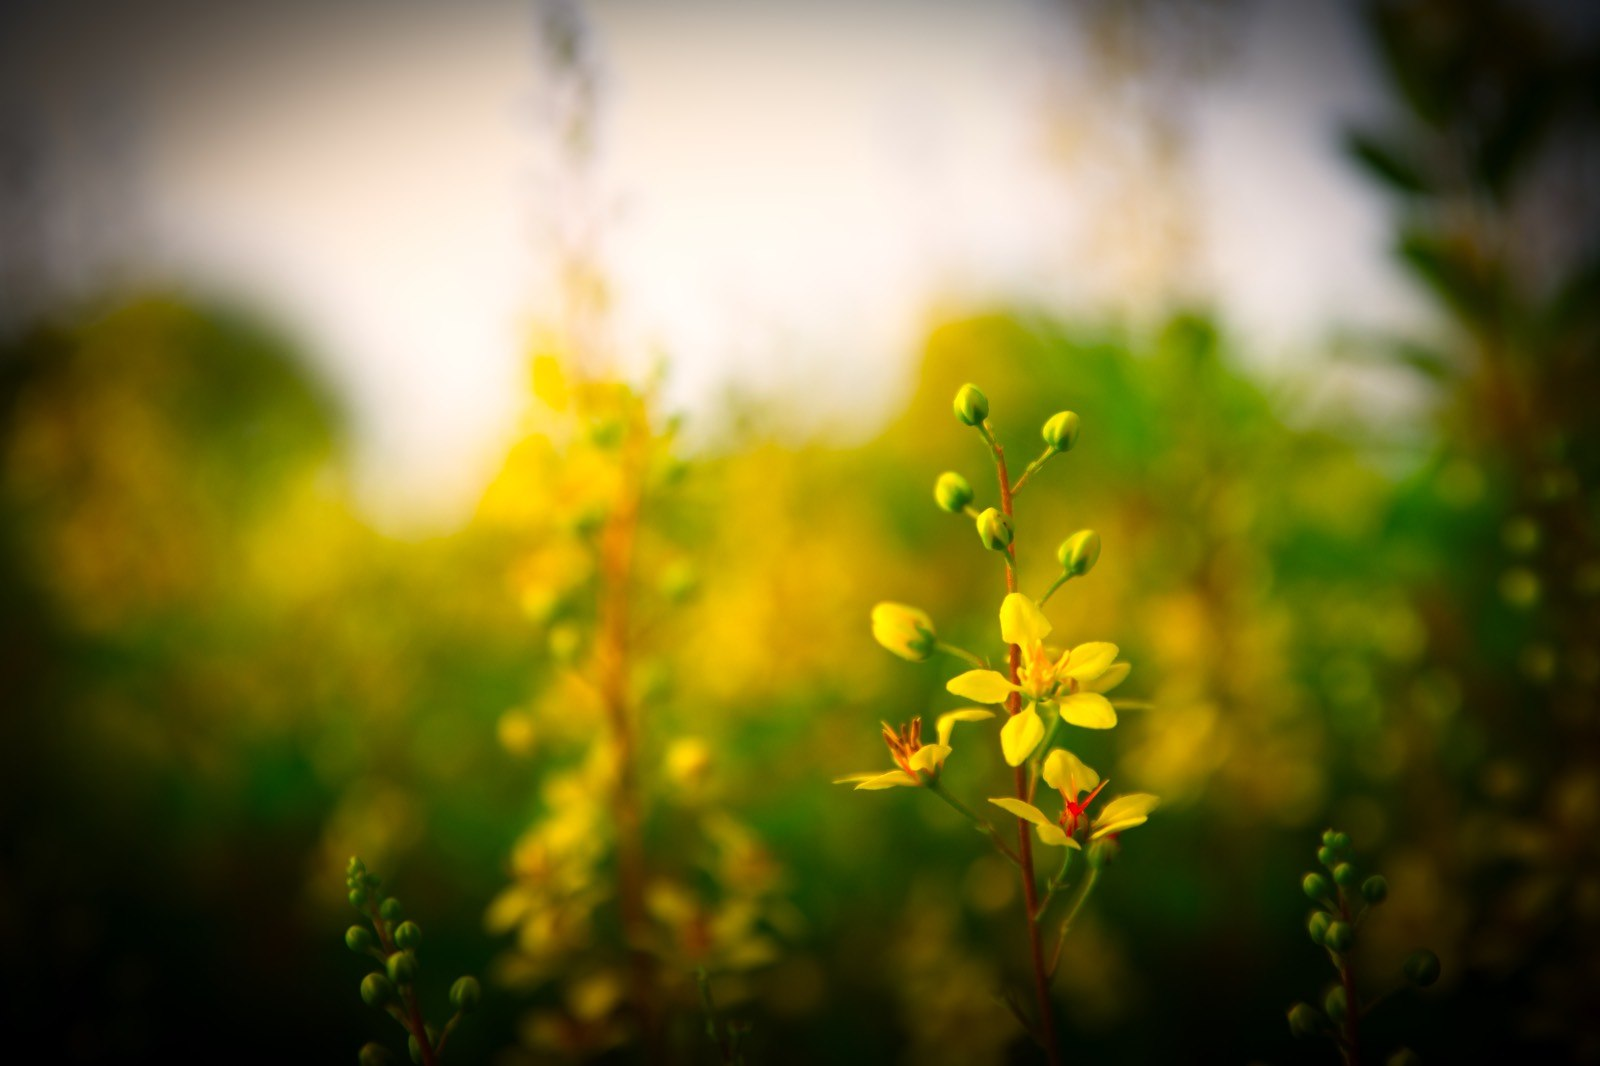 Yellow Flower Photo with Vignette Filter Applied